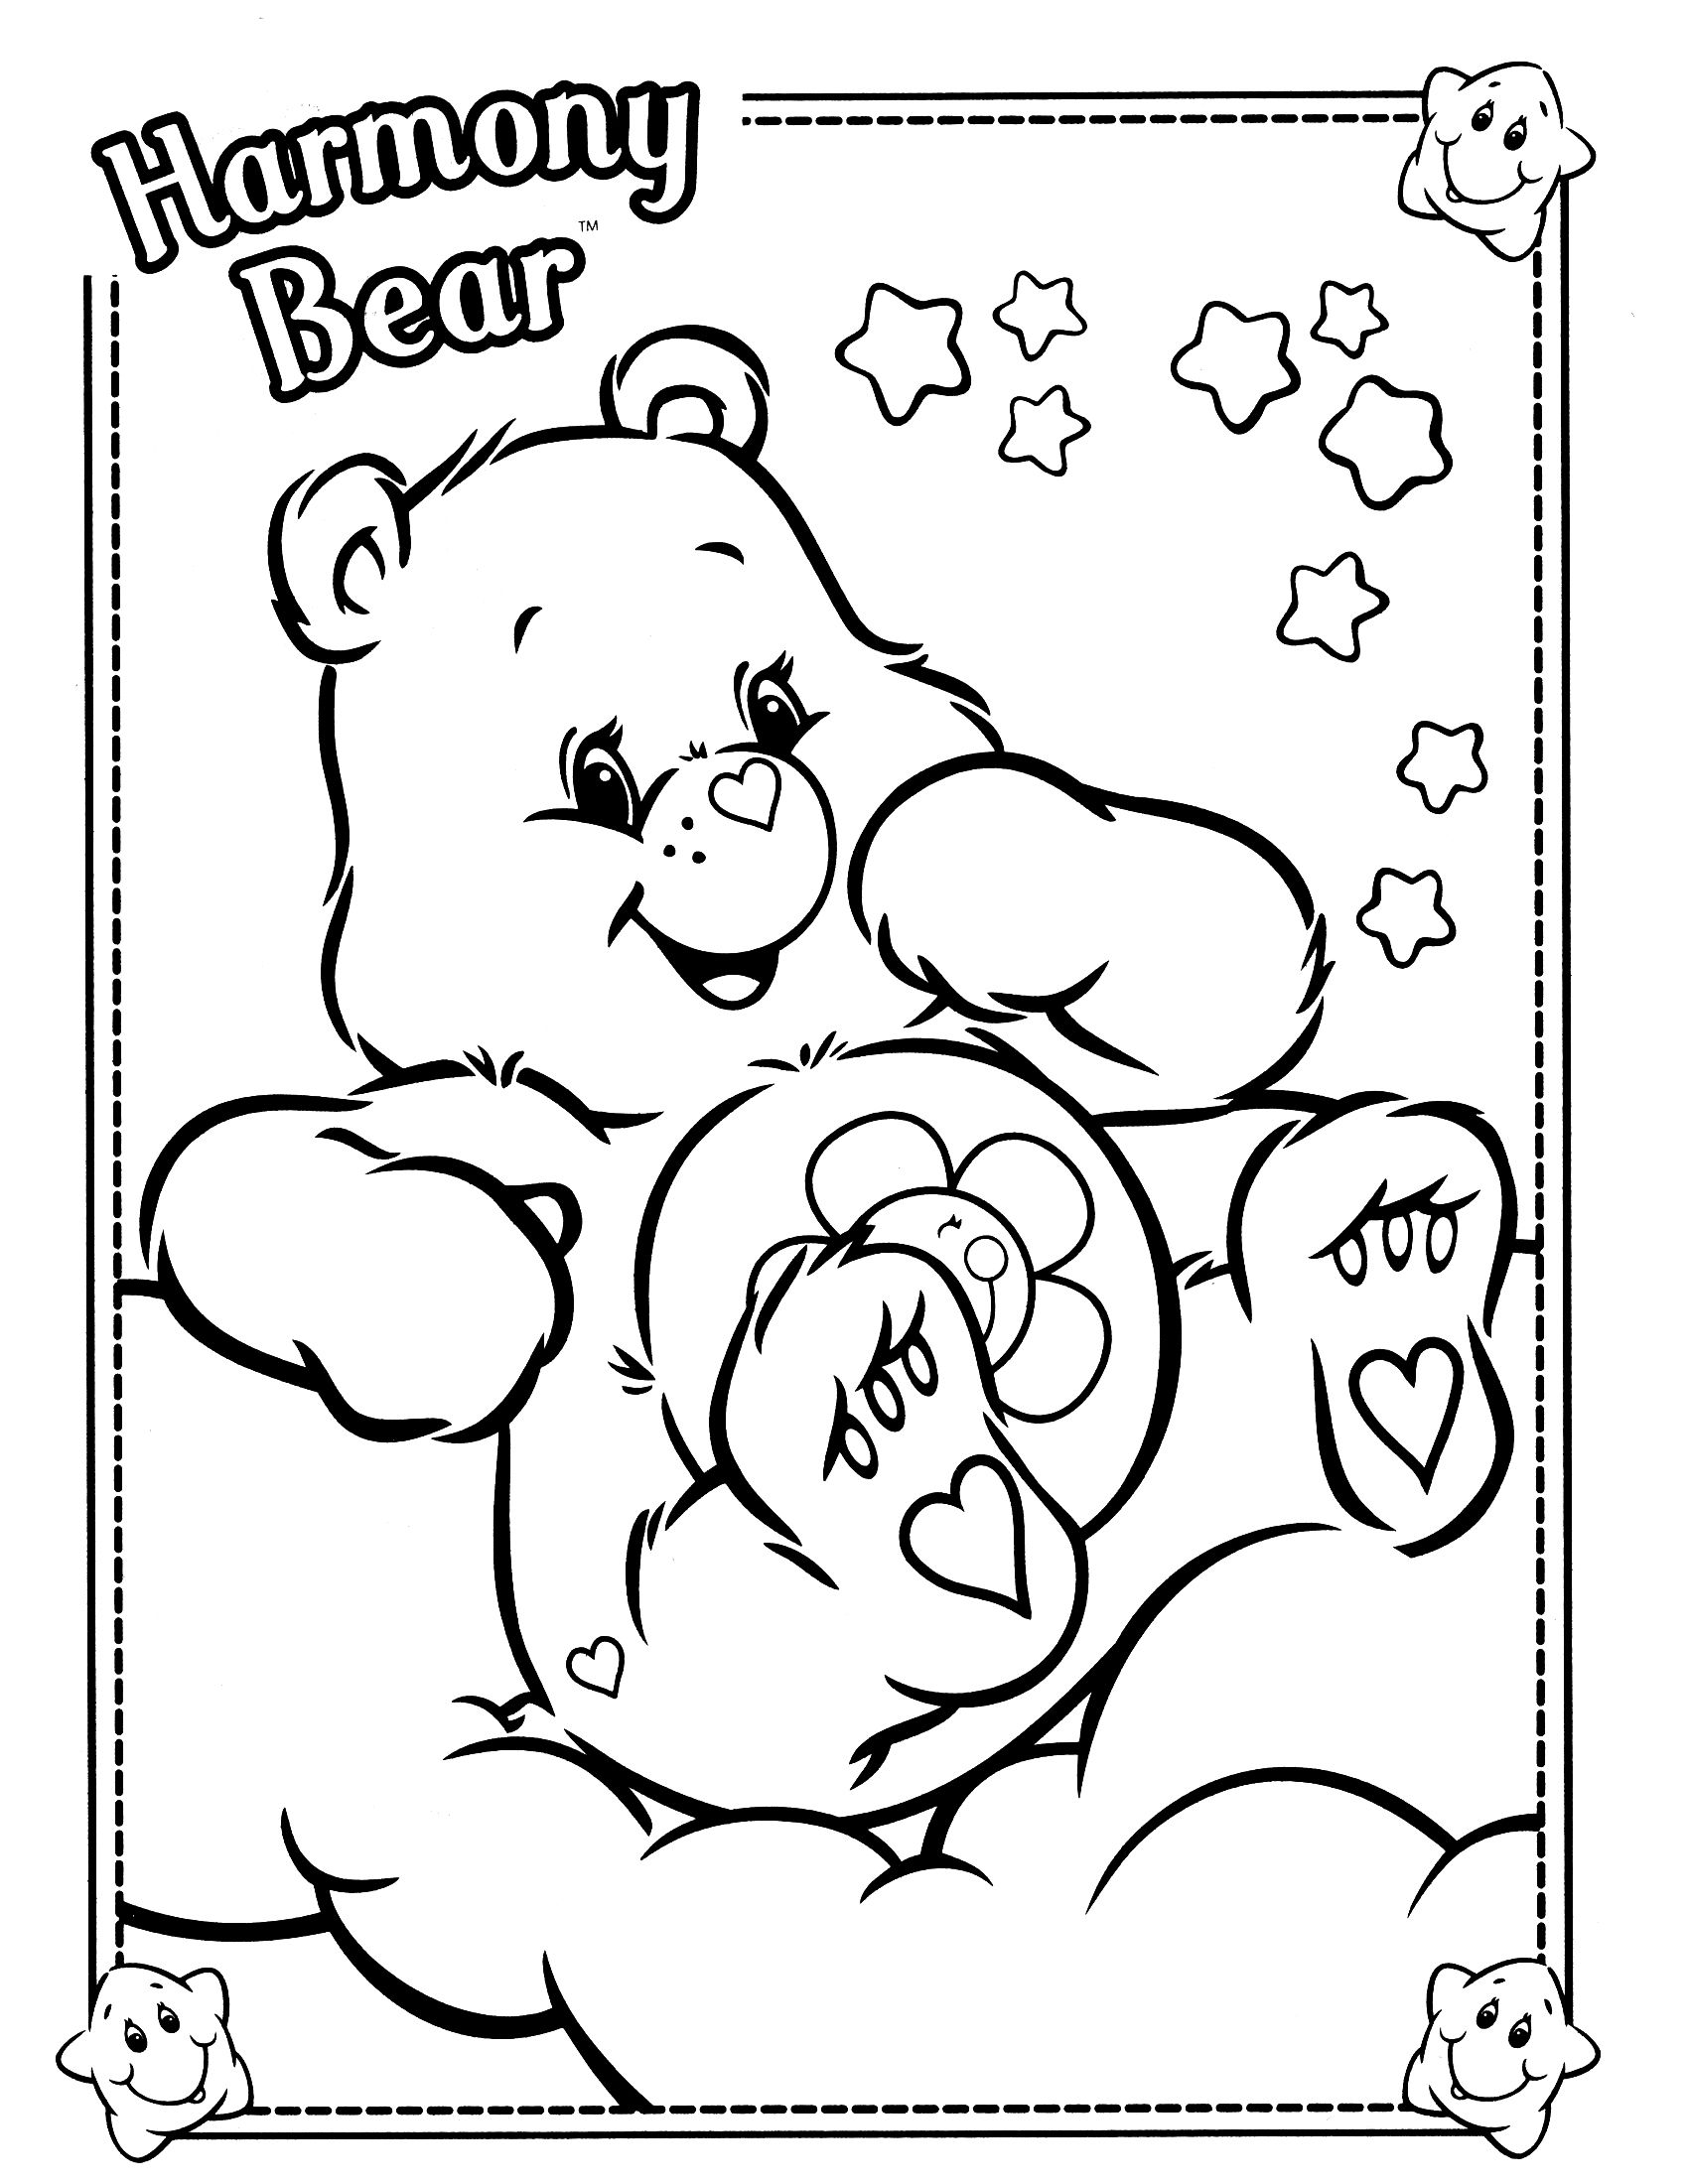 care bears coloring page coloring pages pinterest care bears